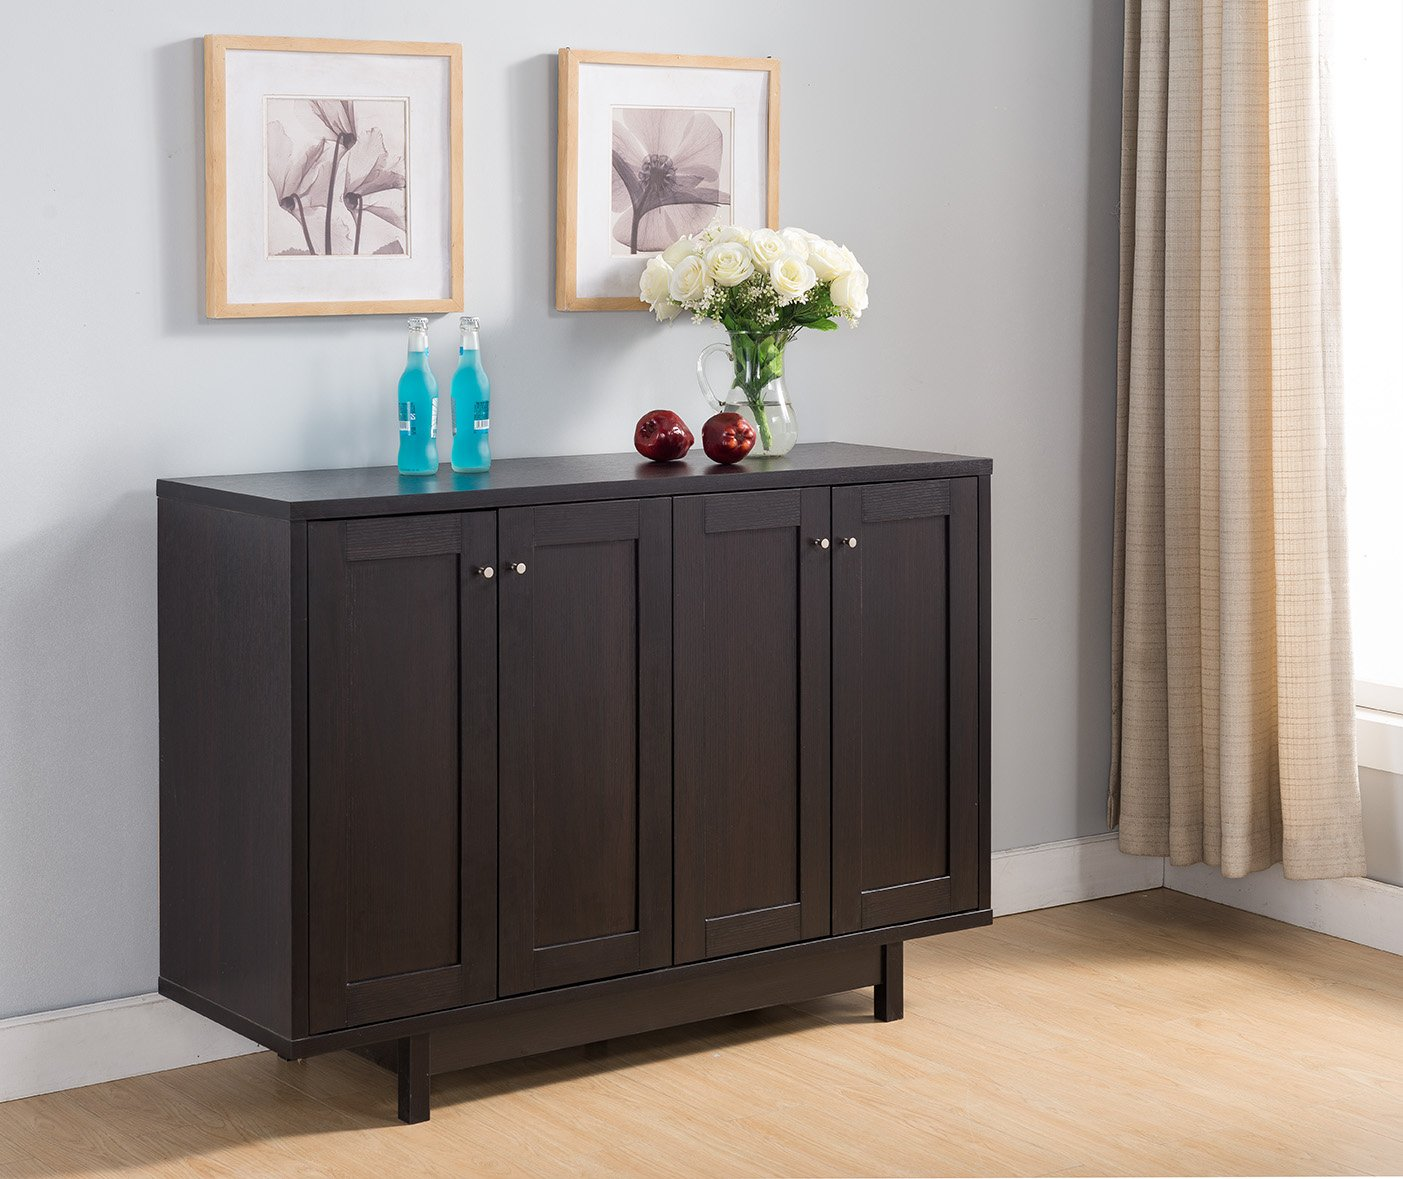 151370 Smart Home Red Cocoa Fine Dining Sideboard Cabinet Buffet Table